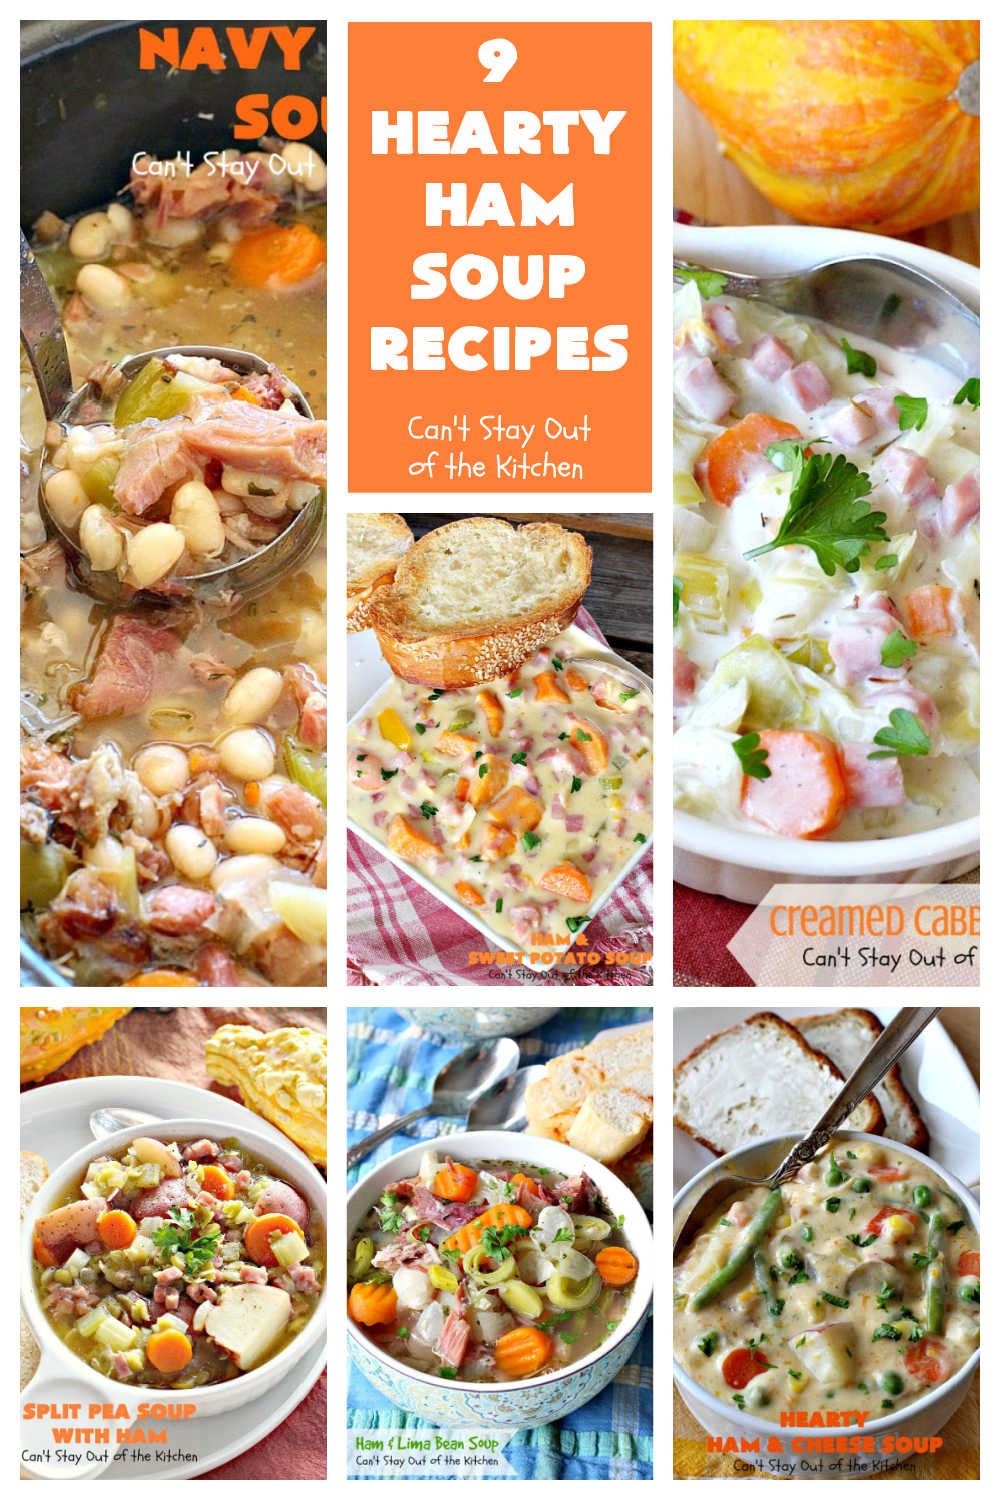 9 Hearty Ham Soup Recipes | Can't Stay Out of the Kitchen | 9 delicious ways to use up leftover #ham from #Easter or other special occasions. These #soup #recipes are hearty, filling & satisfying. Perfect comfort food for winter months. #chowder #HamSoup #HamSoupRecipes #9HeartyHamSoupRecipes